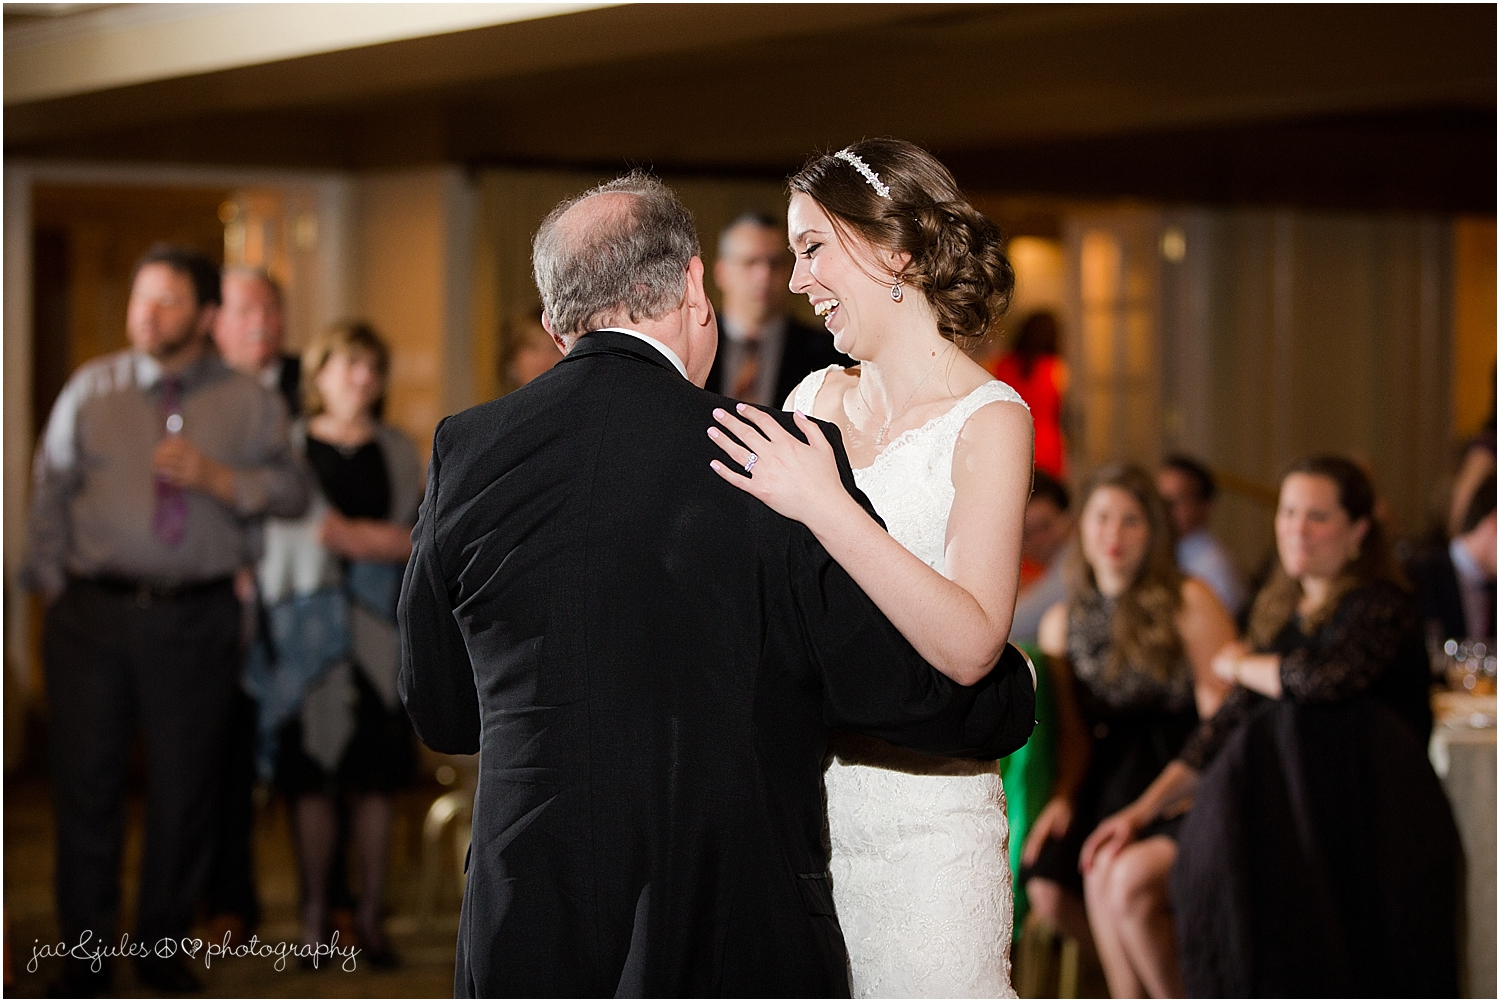 jacnjules photograph first dance at their wedding reception at olde mill inn in basking ridge nj